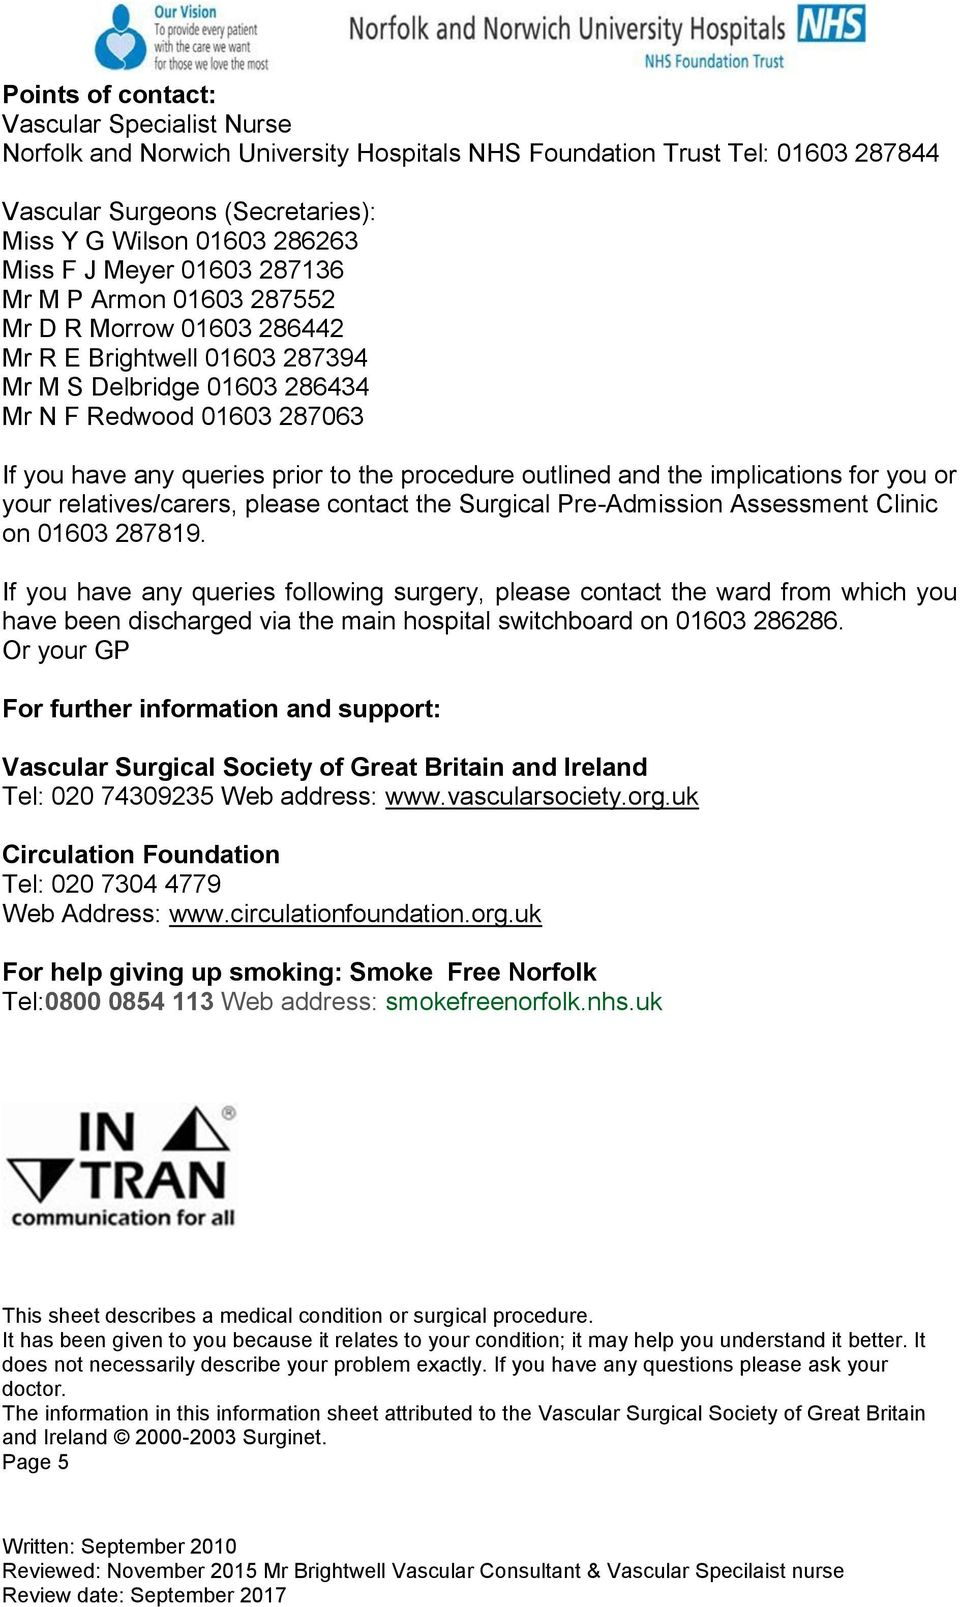 procedure outlined and the implications for you or your relatives/carers, please contact the Surgical Pre-Admission Assessment Clinic on 01603 287819.